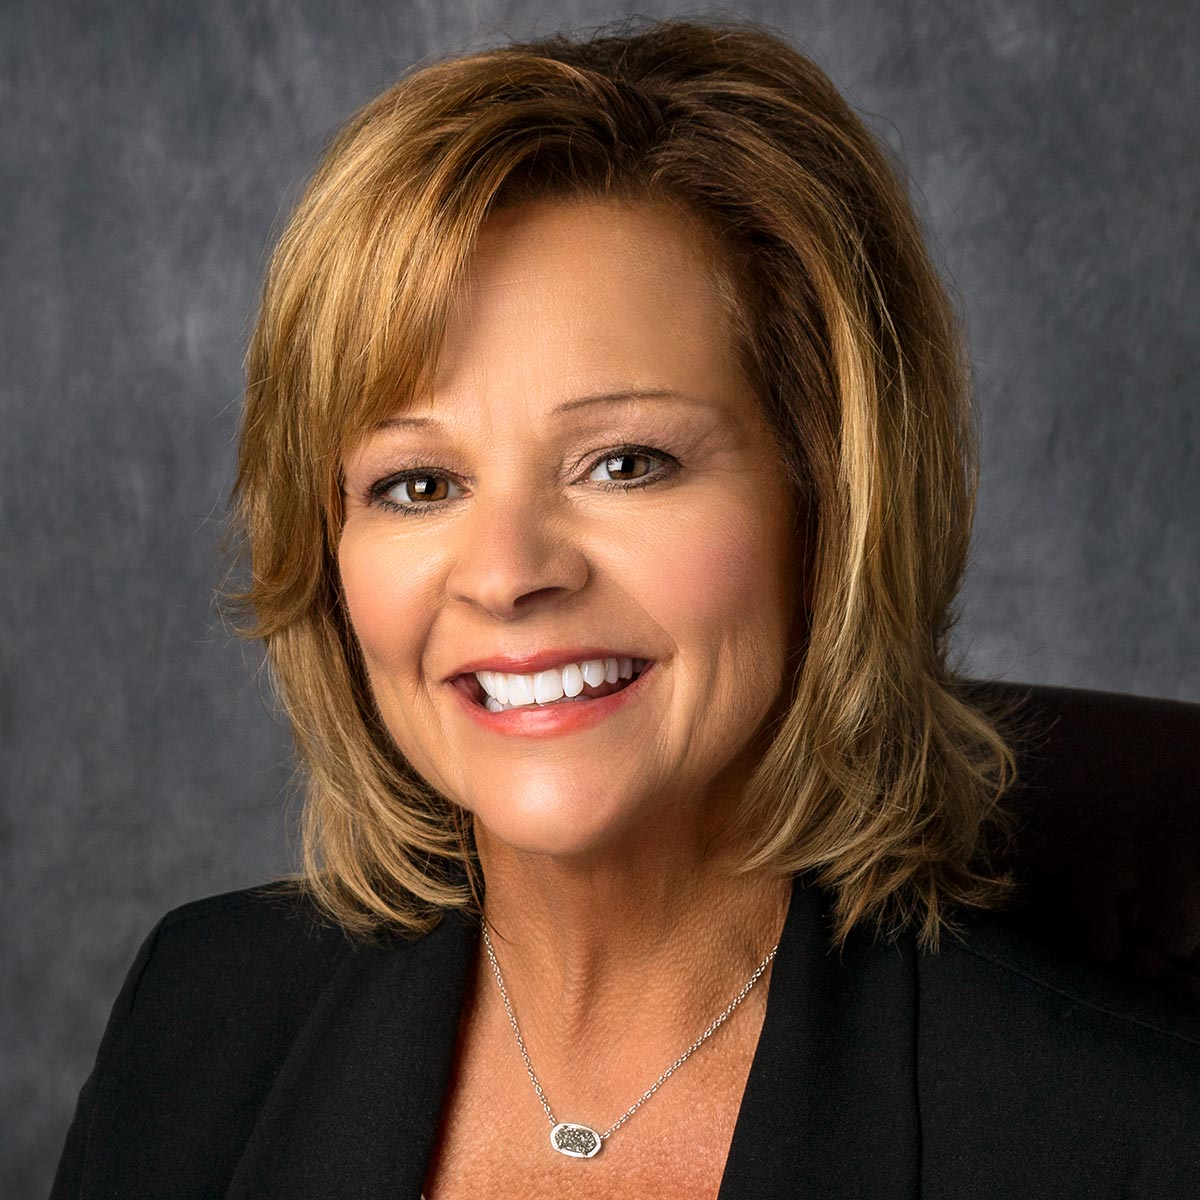 Karen Springer serves as Executive Vice President, Performance Optimization and Nursing Operations for Ascension.